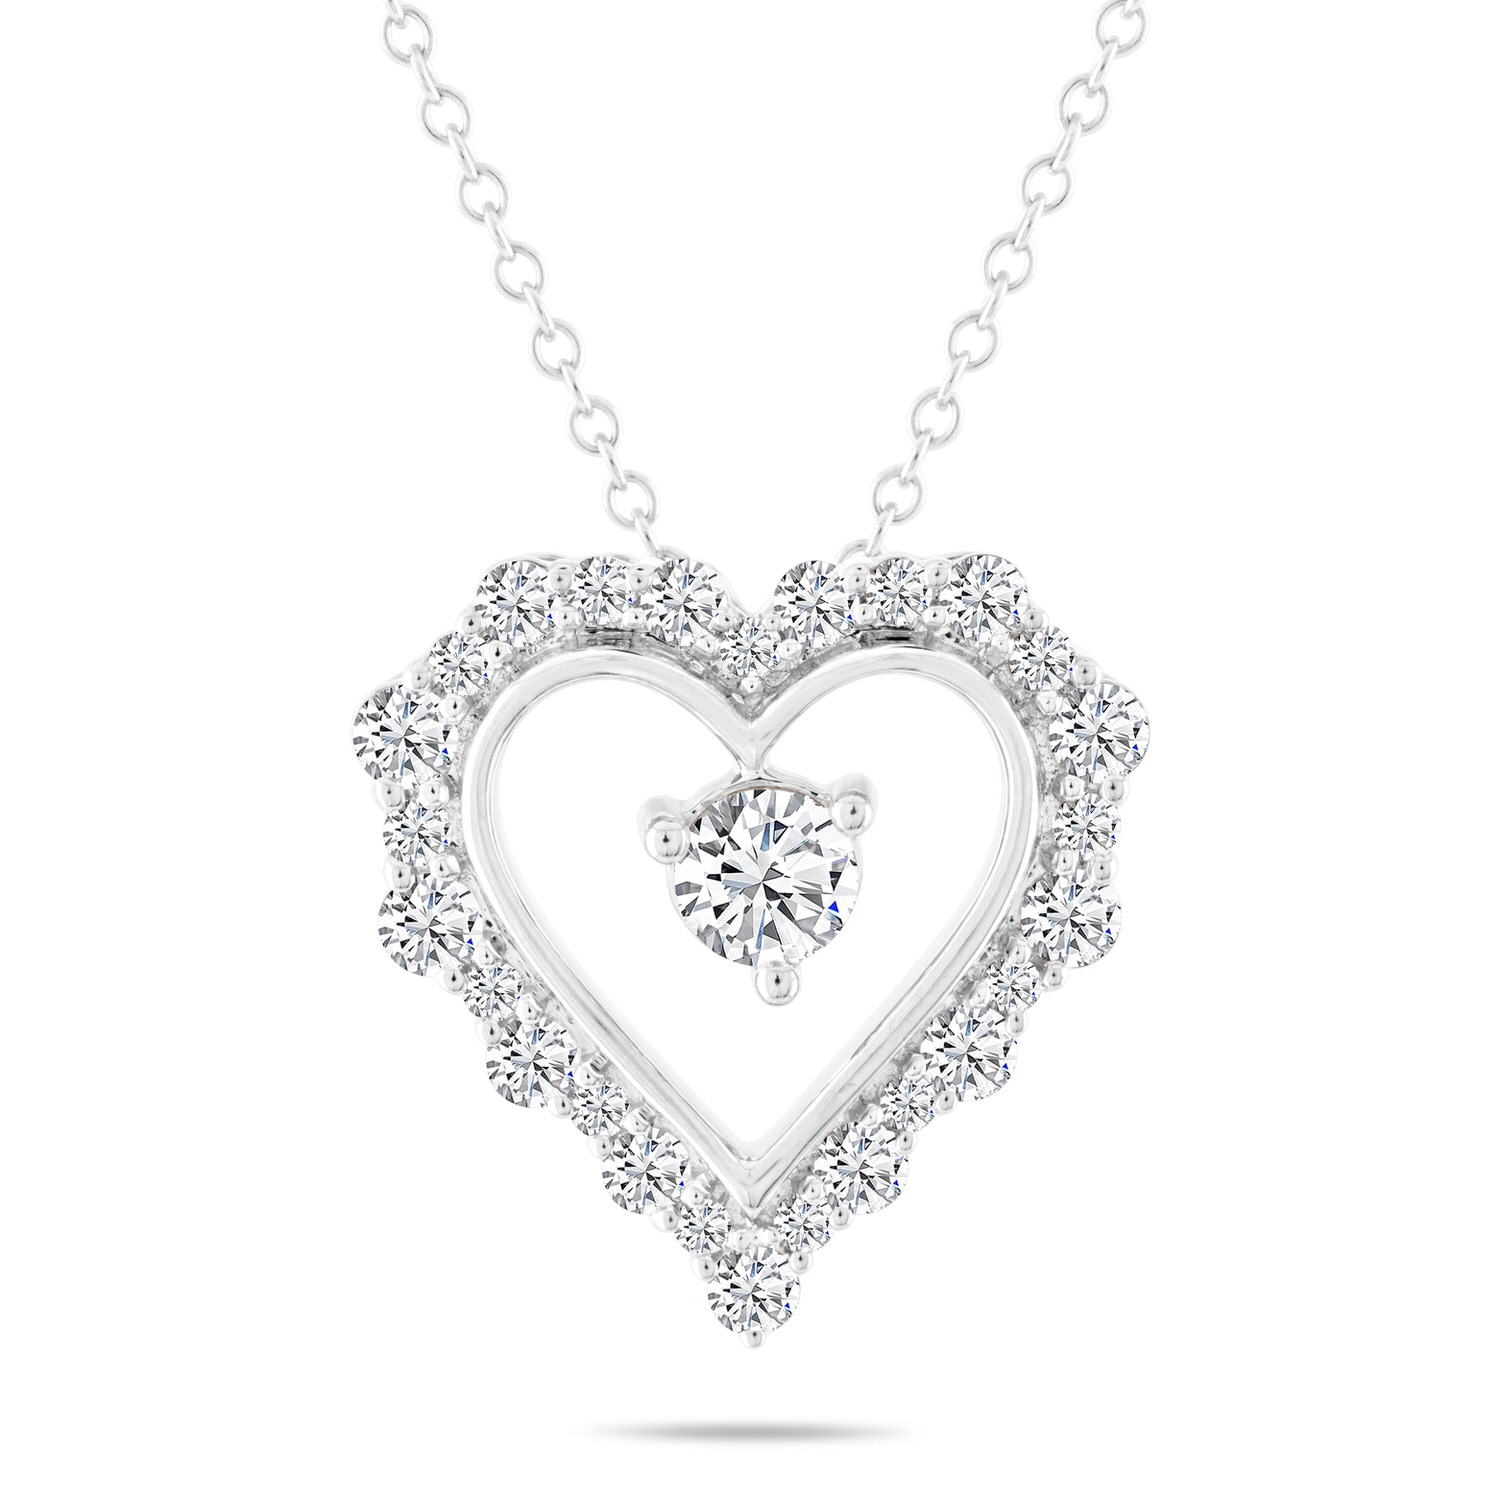 Leo Diamond Heart Necklace 1 ct tw Round-cut 14K White Gold 19″